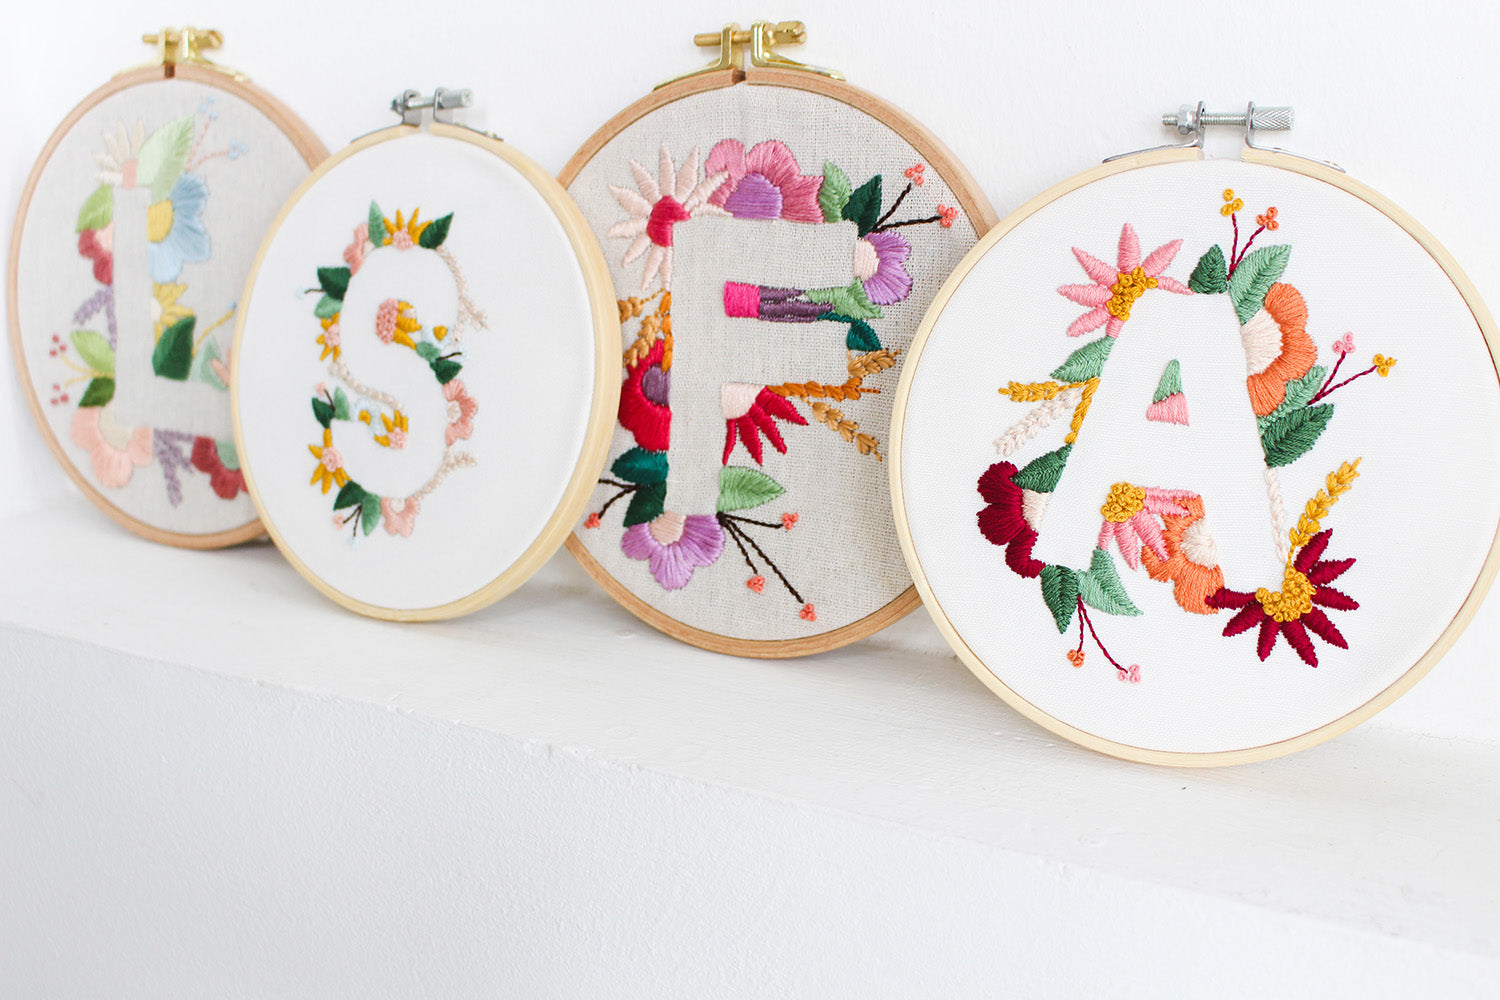 How To Choose Thread Colors For Floral Embroidery